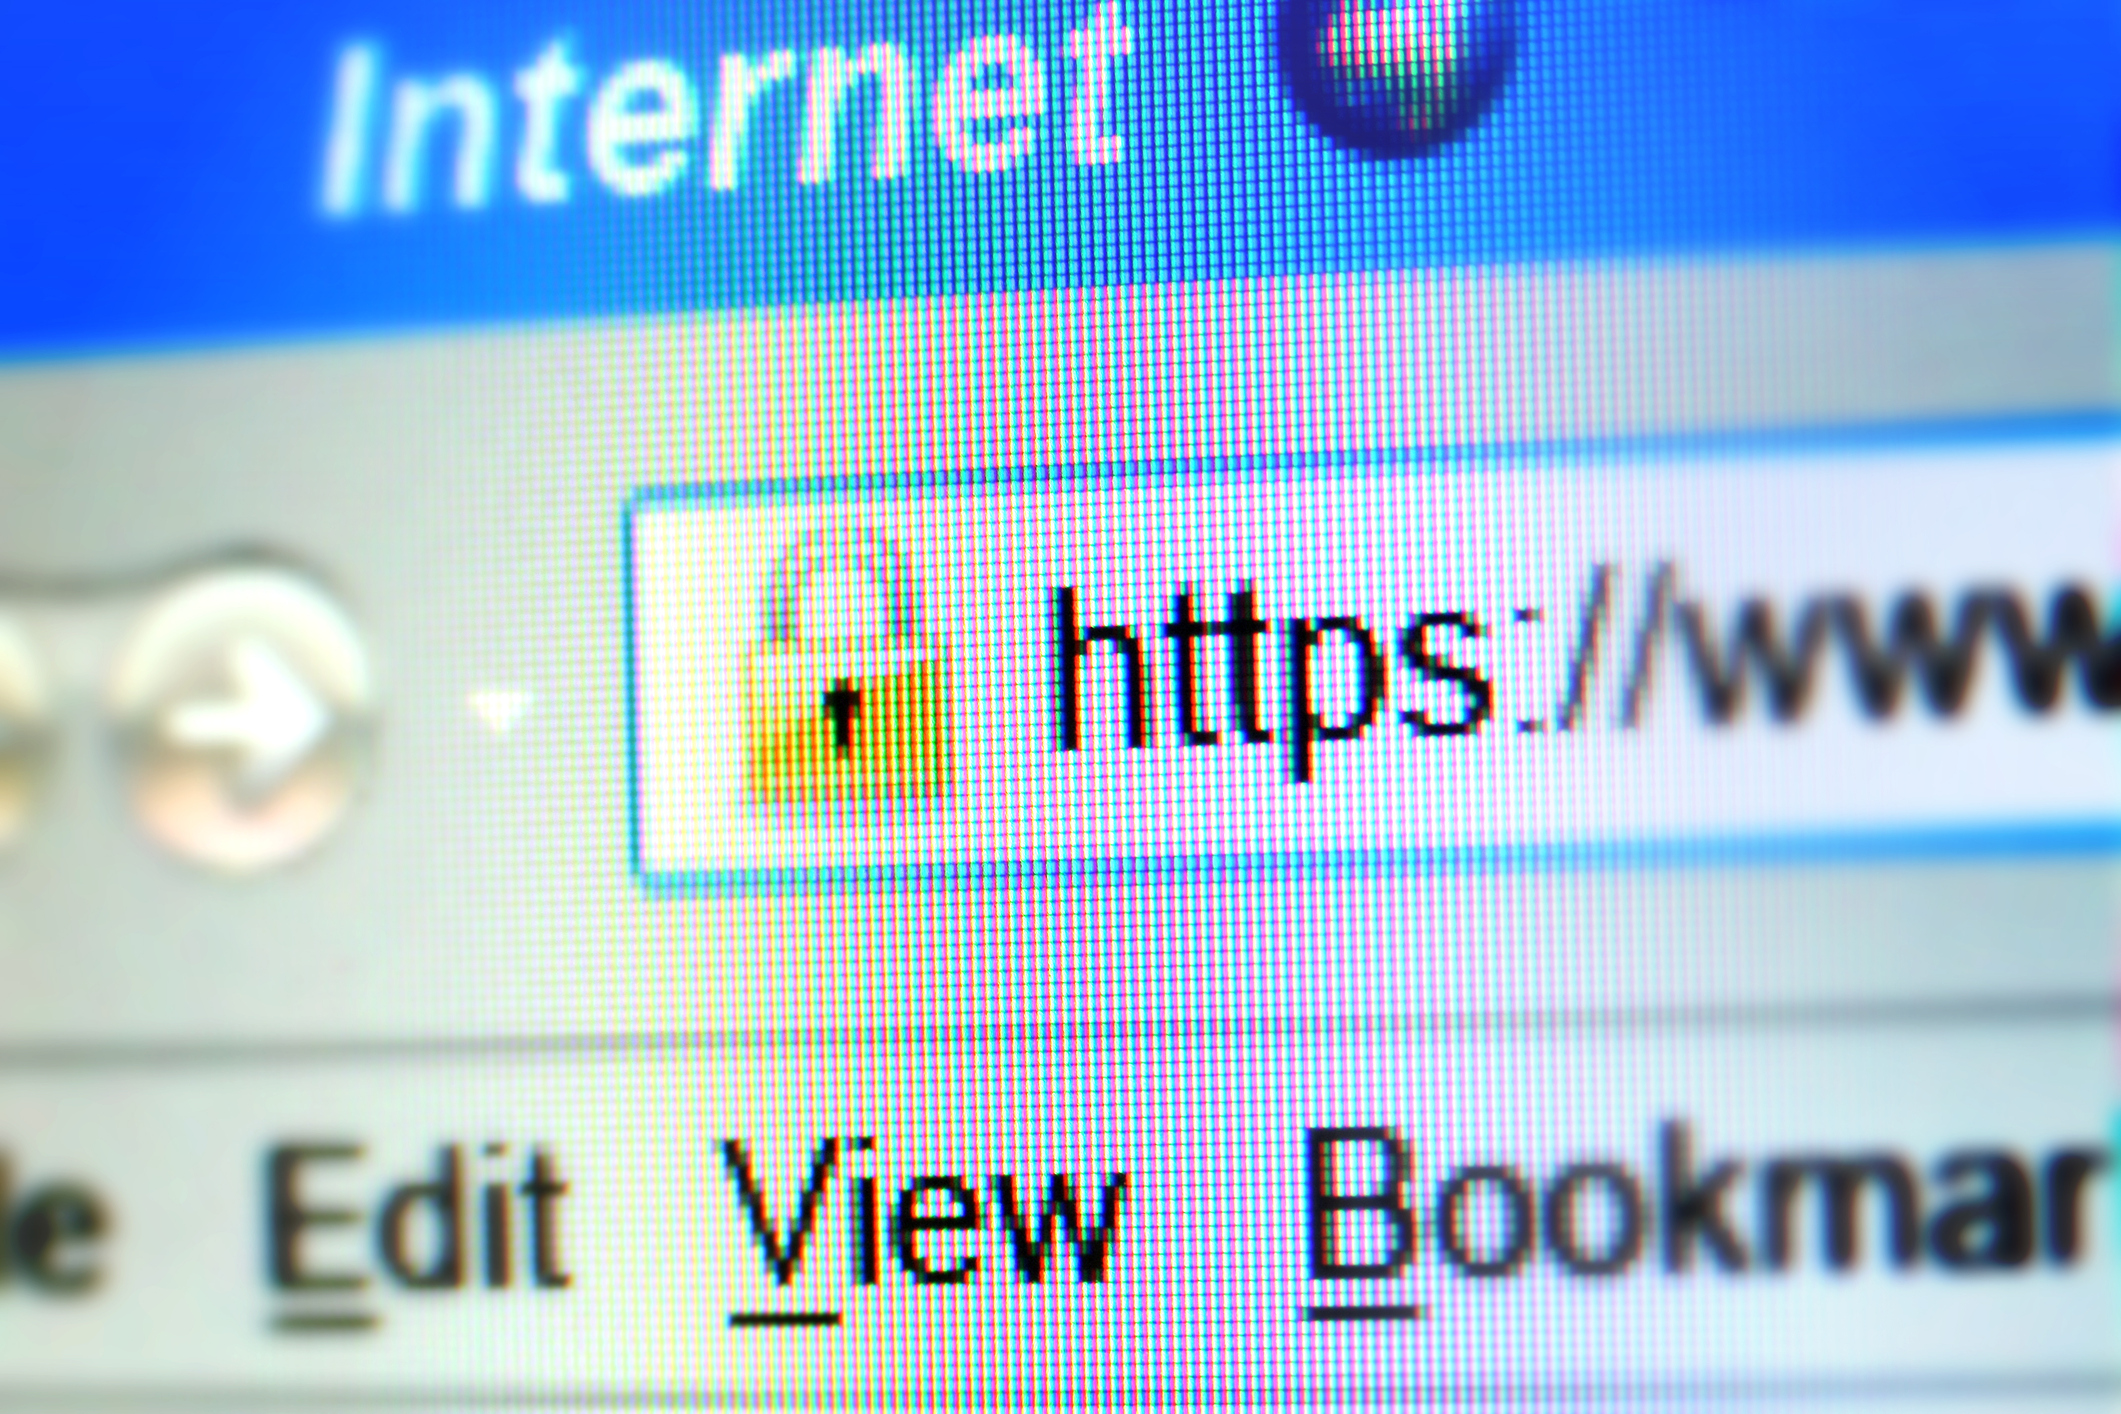 Double symbol of a secure Internet connection: the padlock and S letter on https. Computer screen with selective focus on RGV pixels visible.